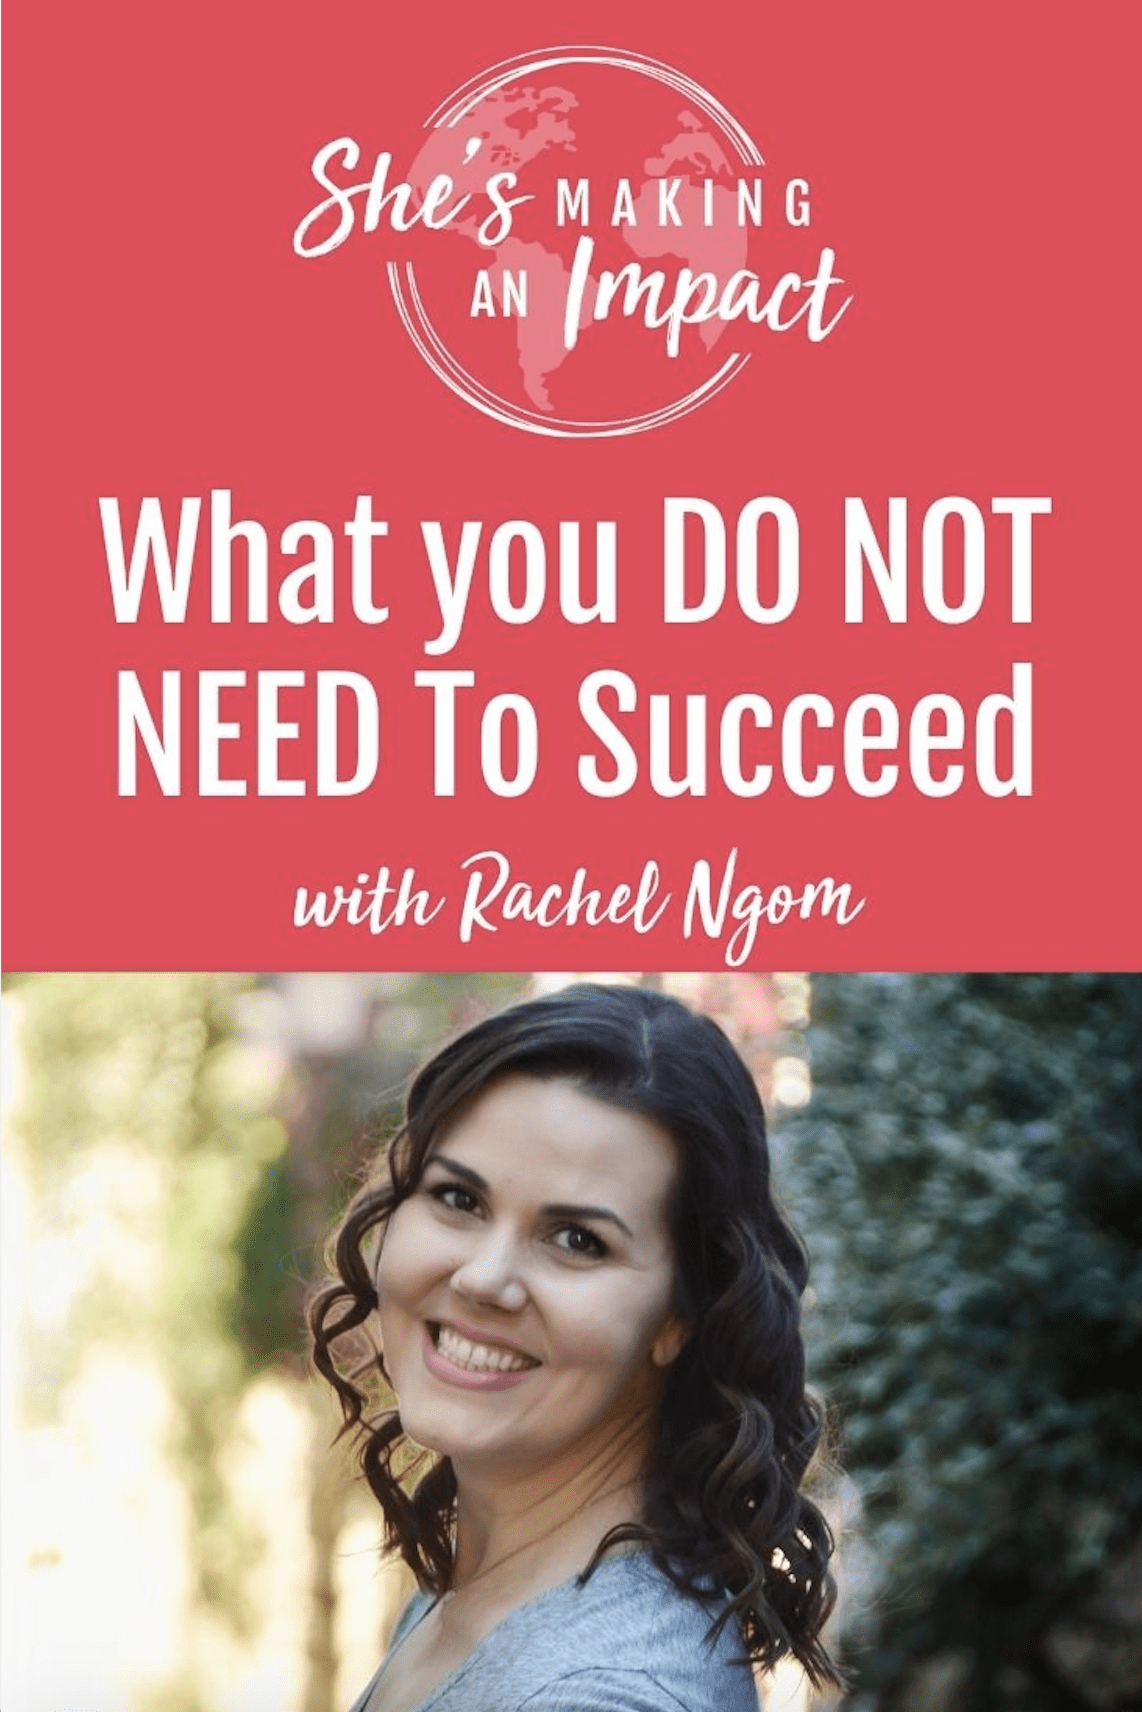 What you DO NOT NEED To Succeed: Episode 270